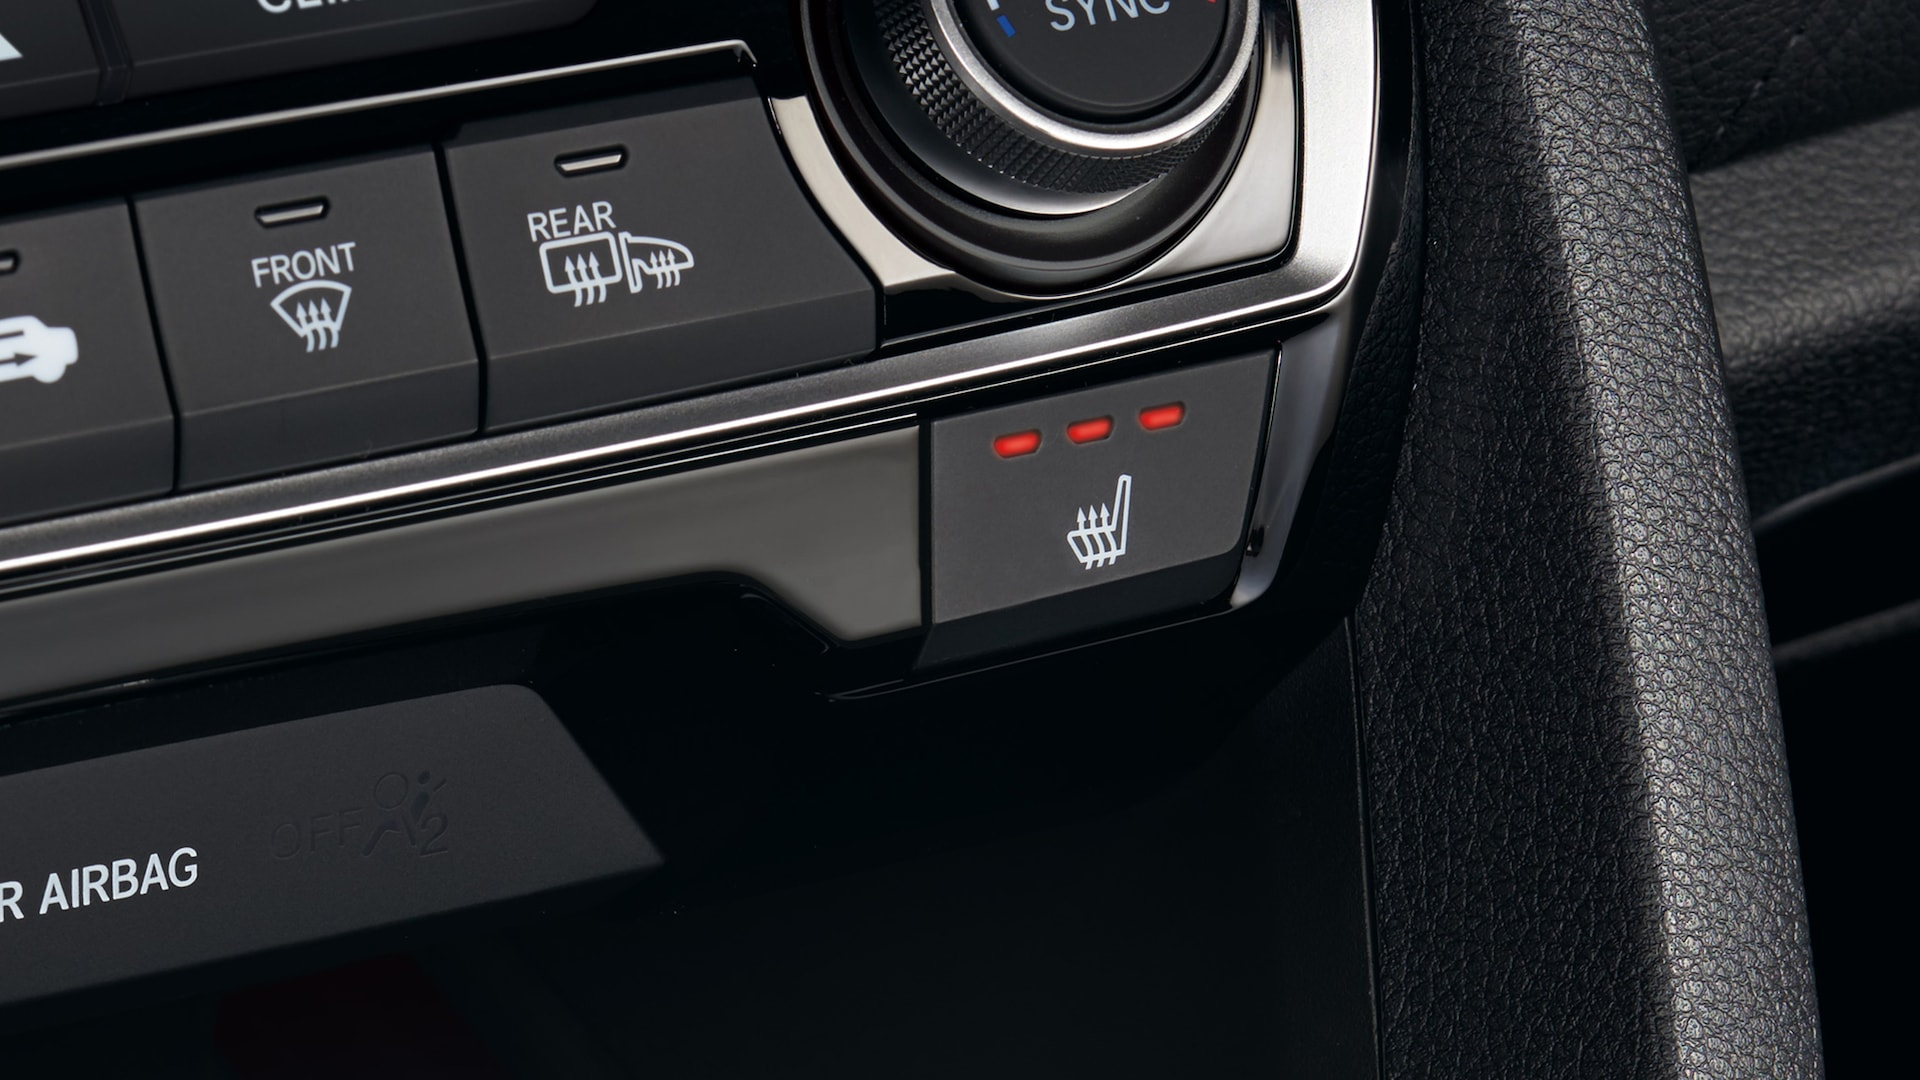 Button detail for heated front seats activated in the 2020 Honda Civic Coupe.